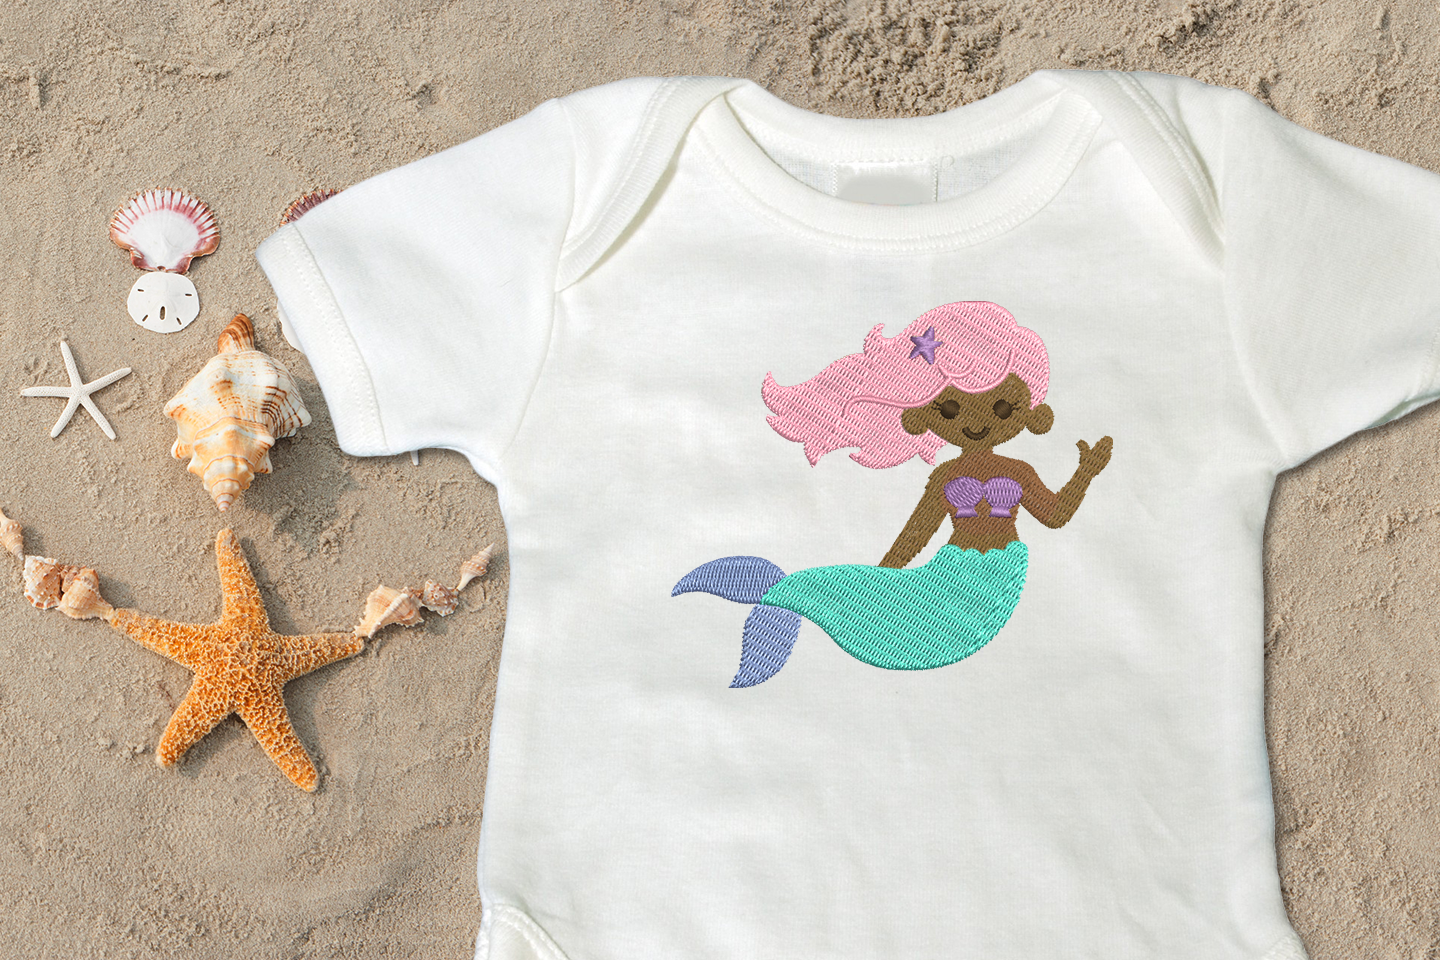 Mermaid Applique Embroidery Design example image 2